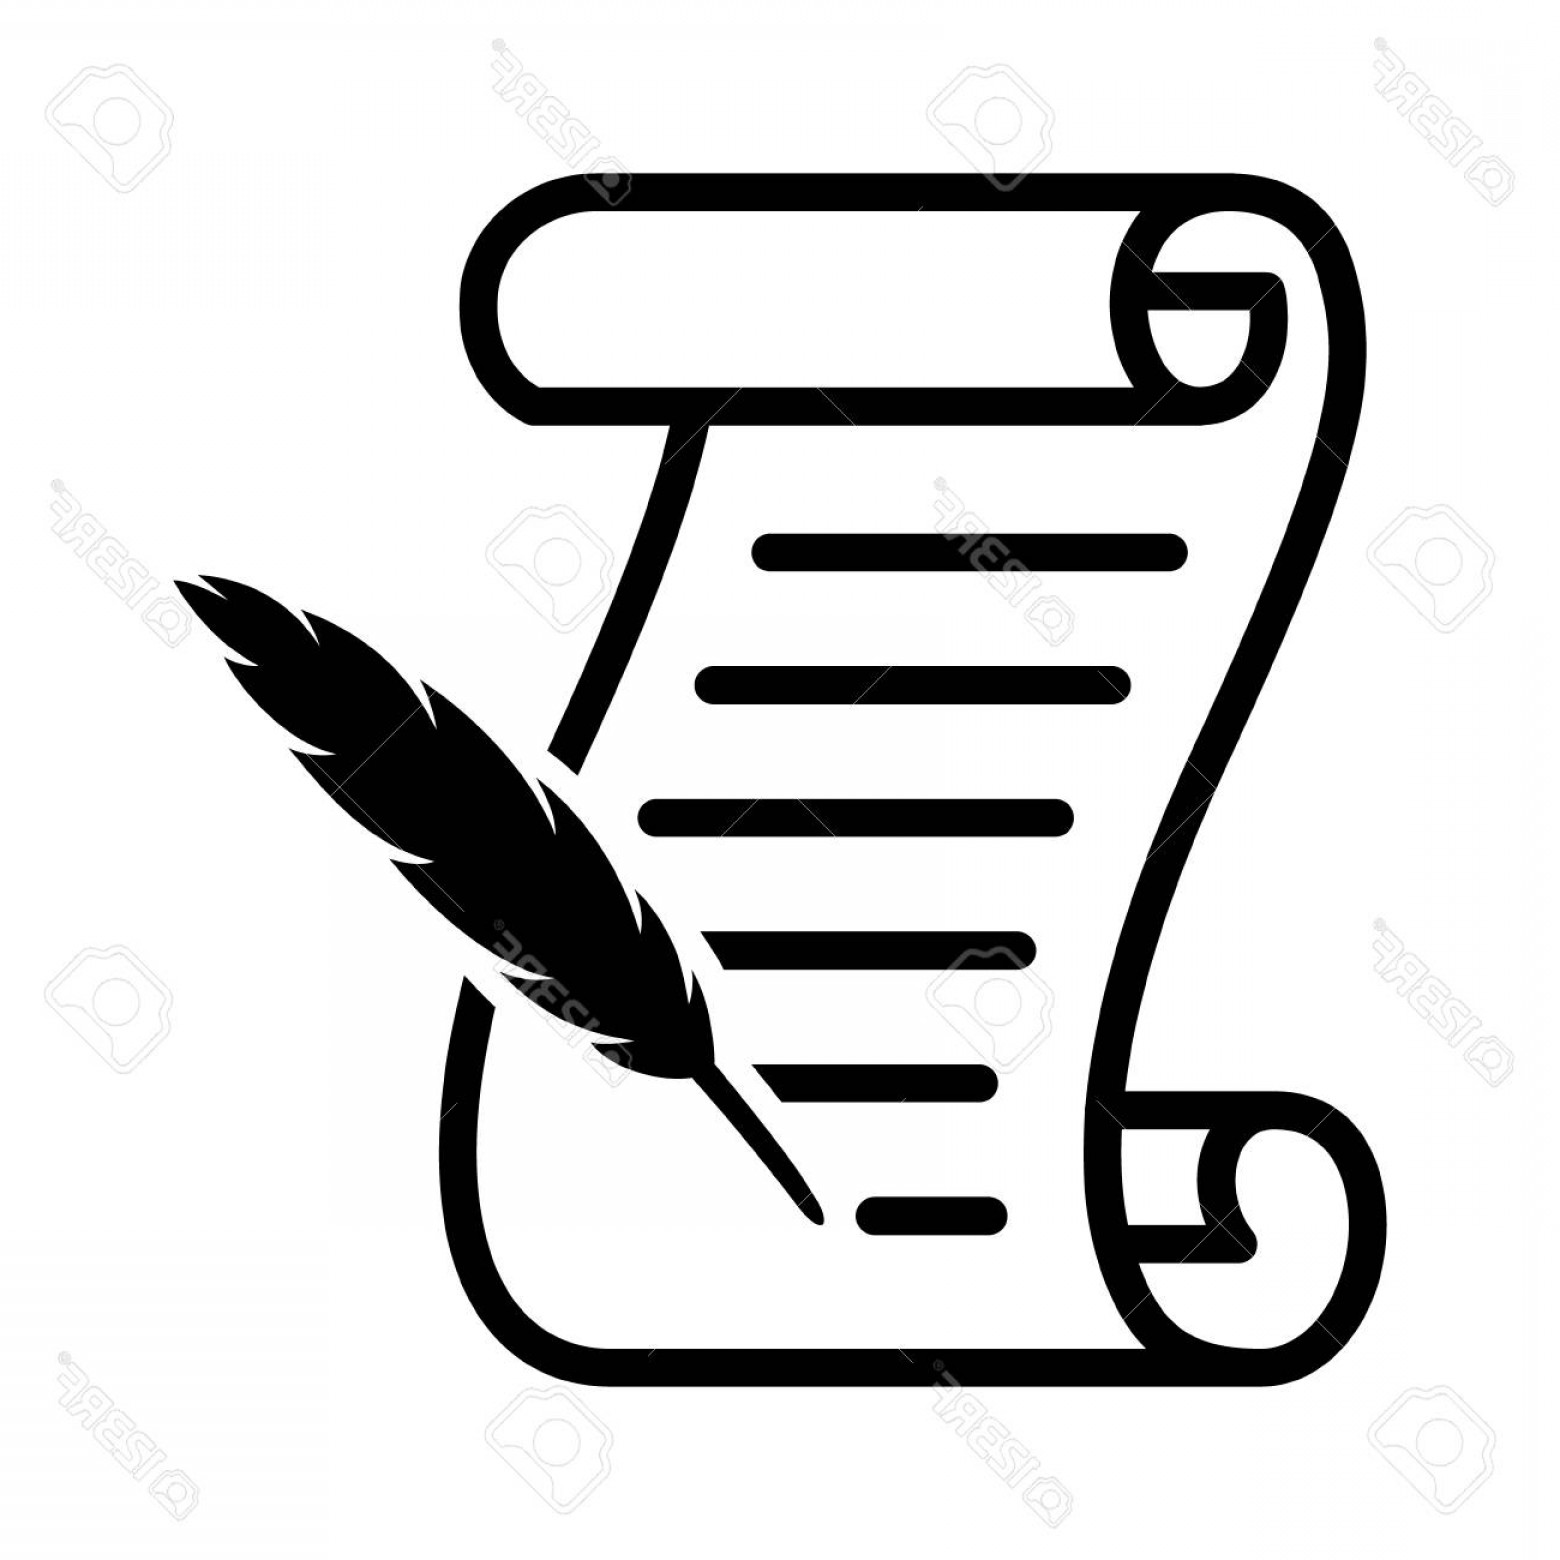 Quill Pen Vector: Photostock Vector Writing On A Scroll With A Feather Quill Pen Line Art Vector Icon For Games And Websites